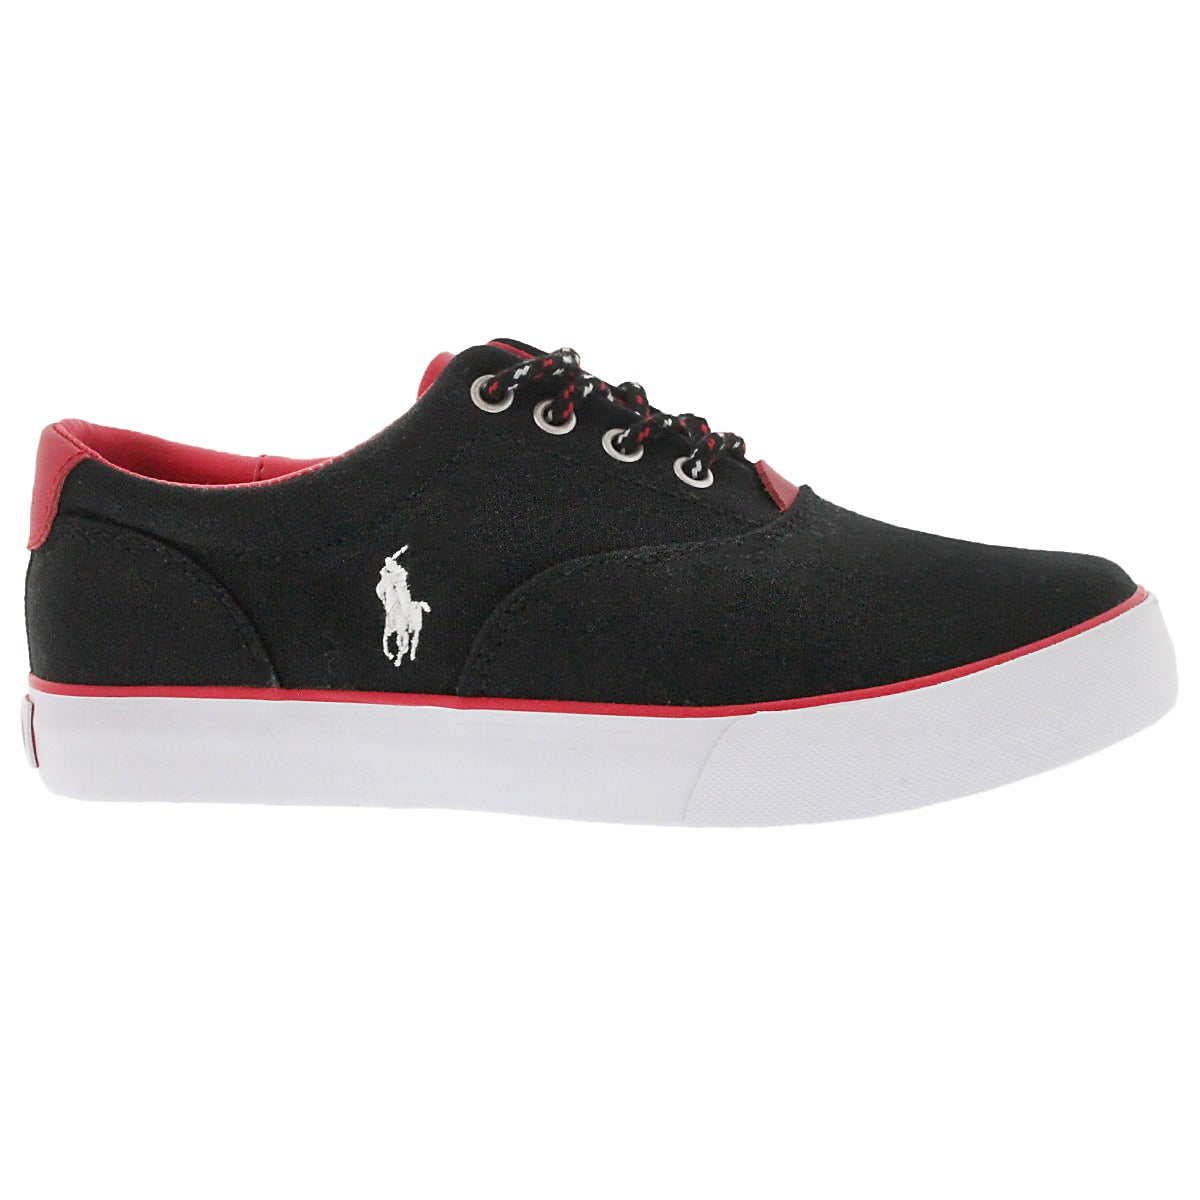 Bys Vaughn black lace up sneaker